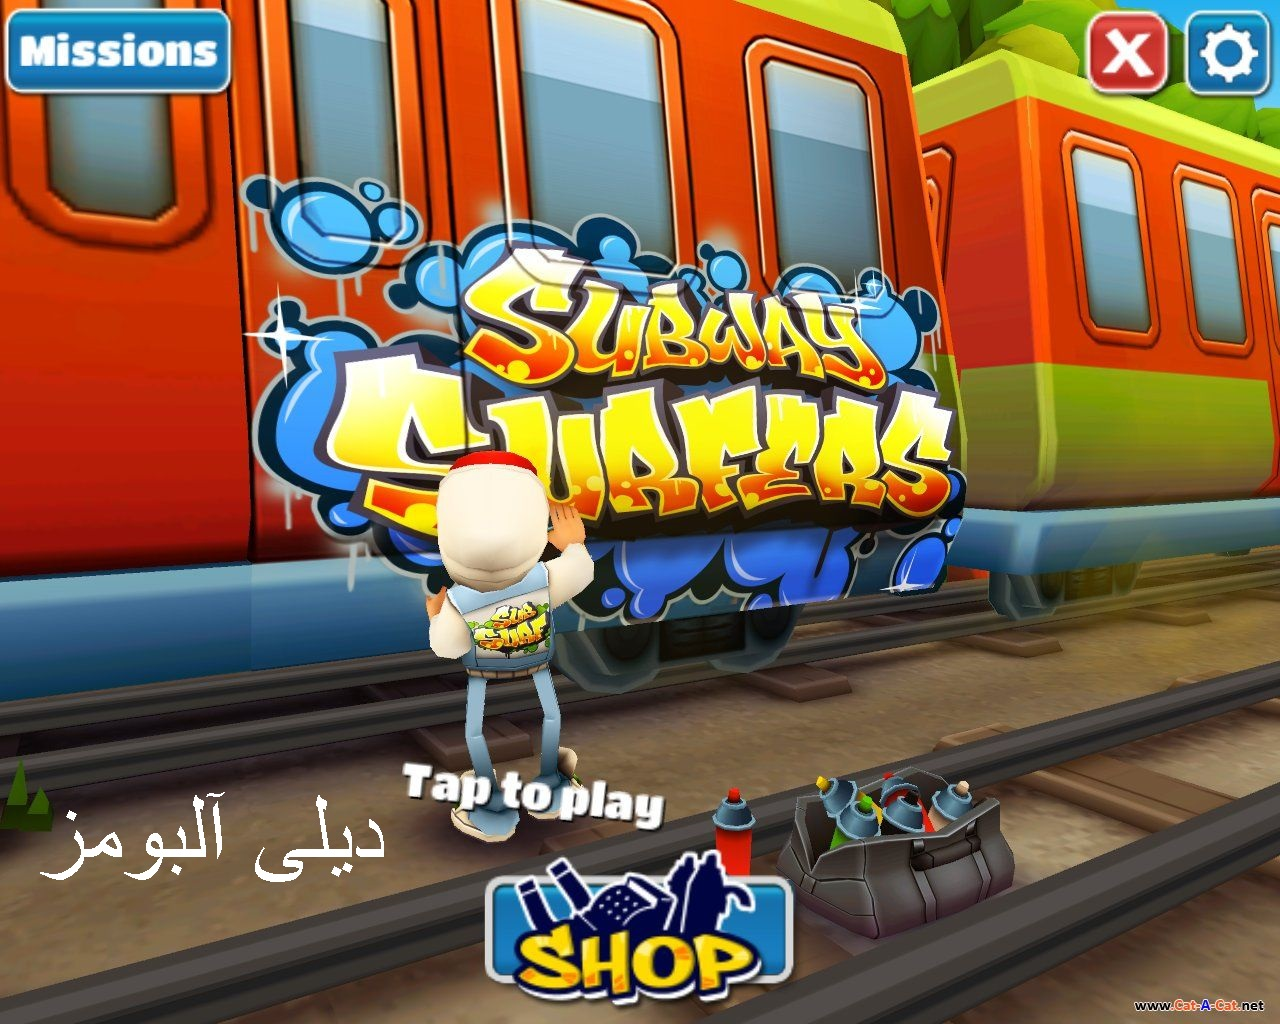 http://rozup.ir/up/dailyalbums/Subway_Surfers_ENG%20(PC)%20(dailyalbums.co.nr).jpg